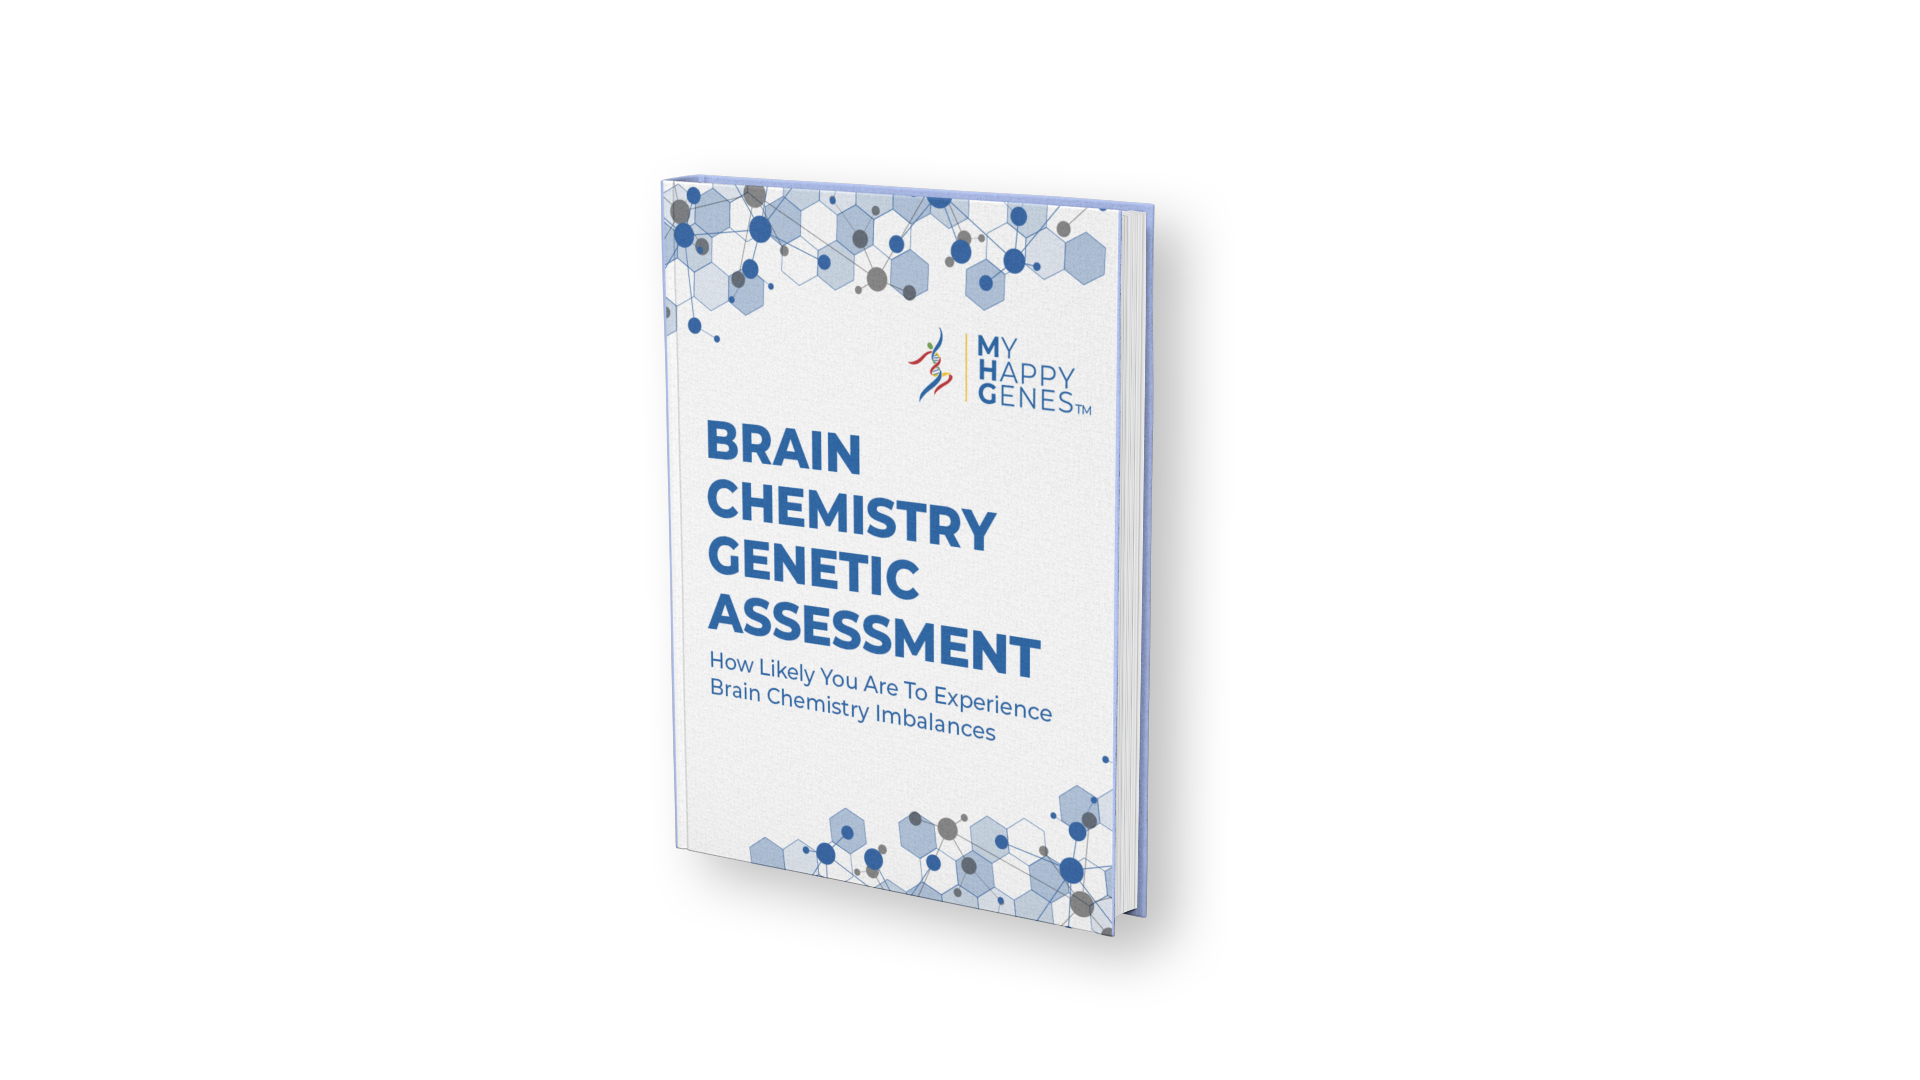 Analyze My Genes - Brain Chemistry Genetic Assessment